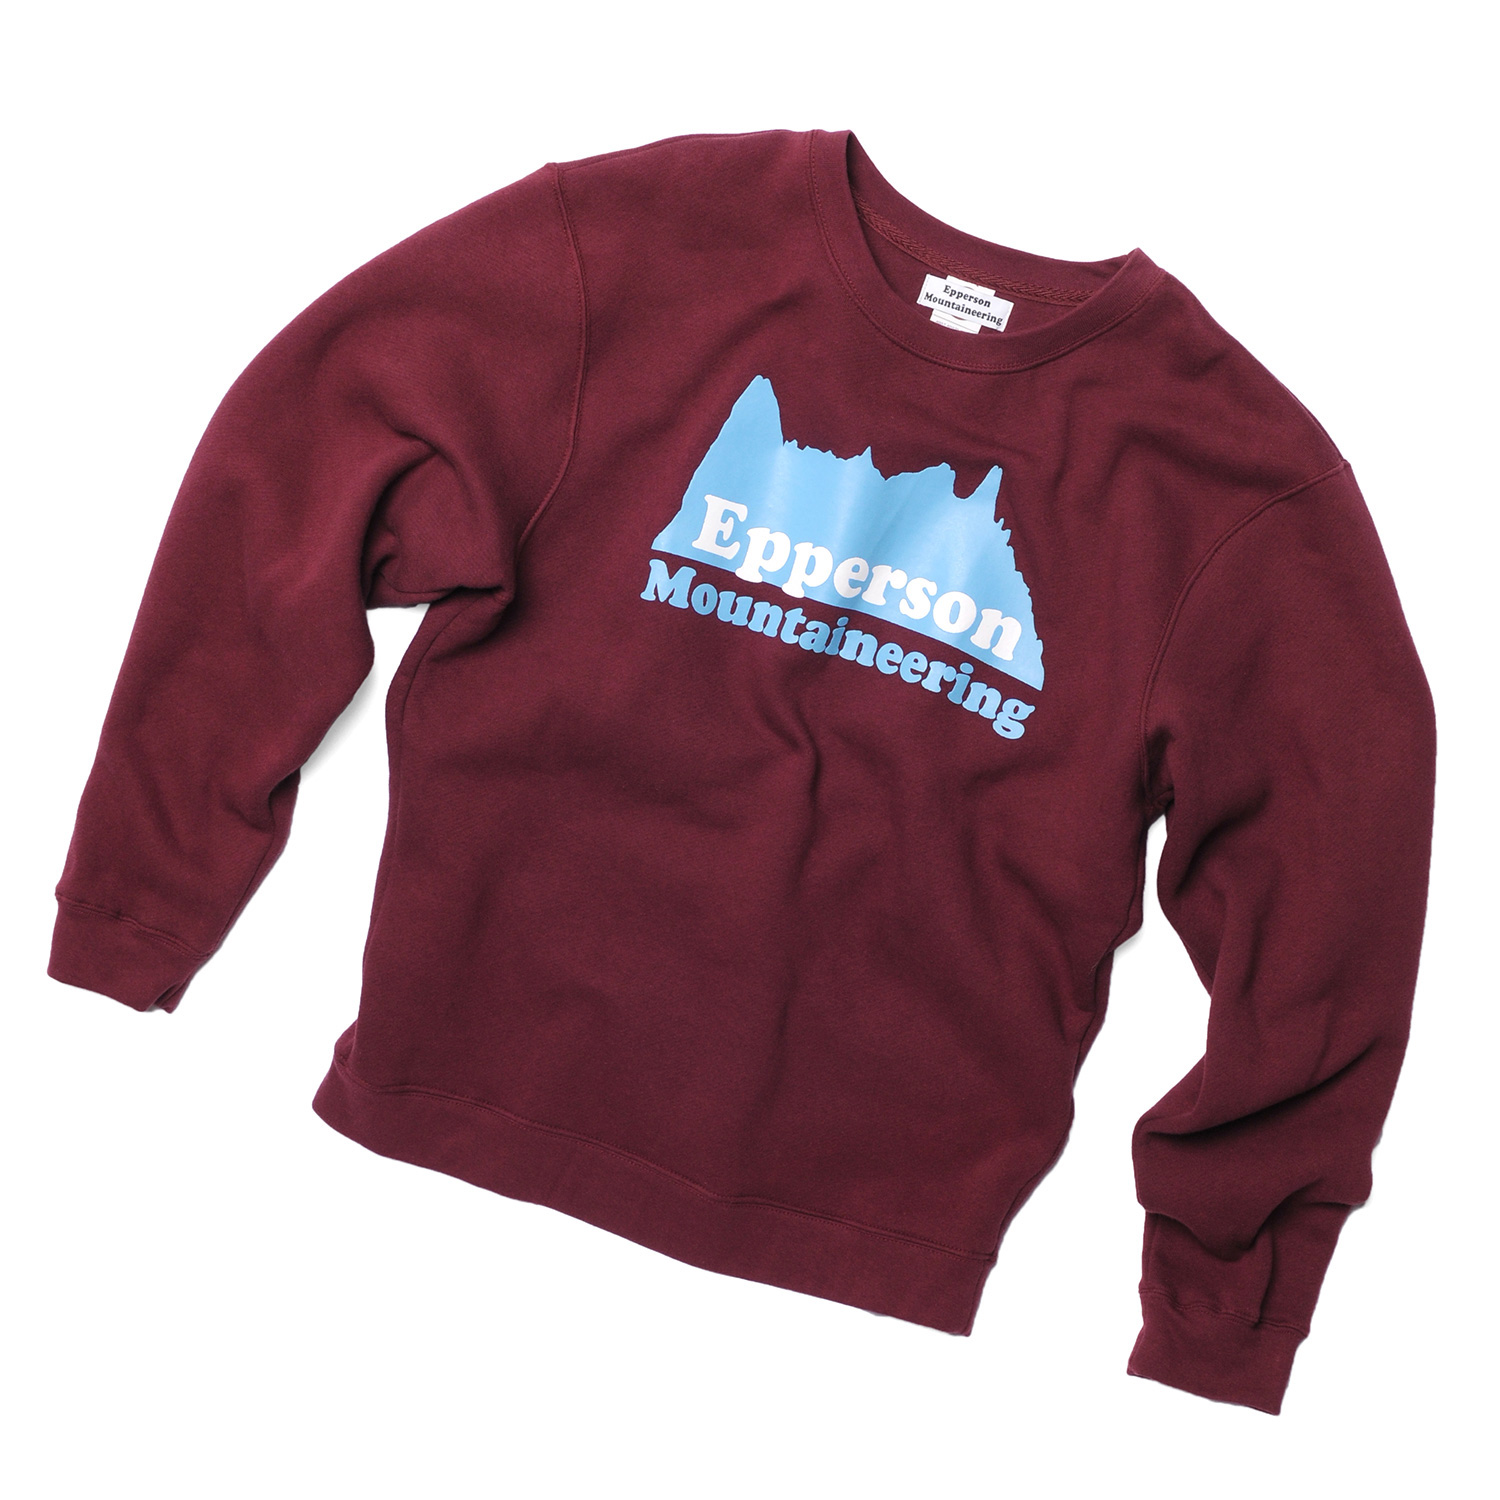 1-Heavyweight-Fleece-Crewneck-Sweater,-Maroon,-Front.jpg